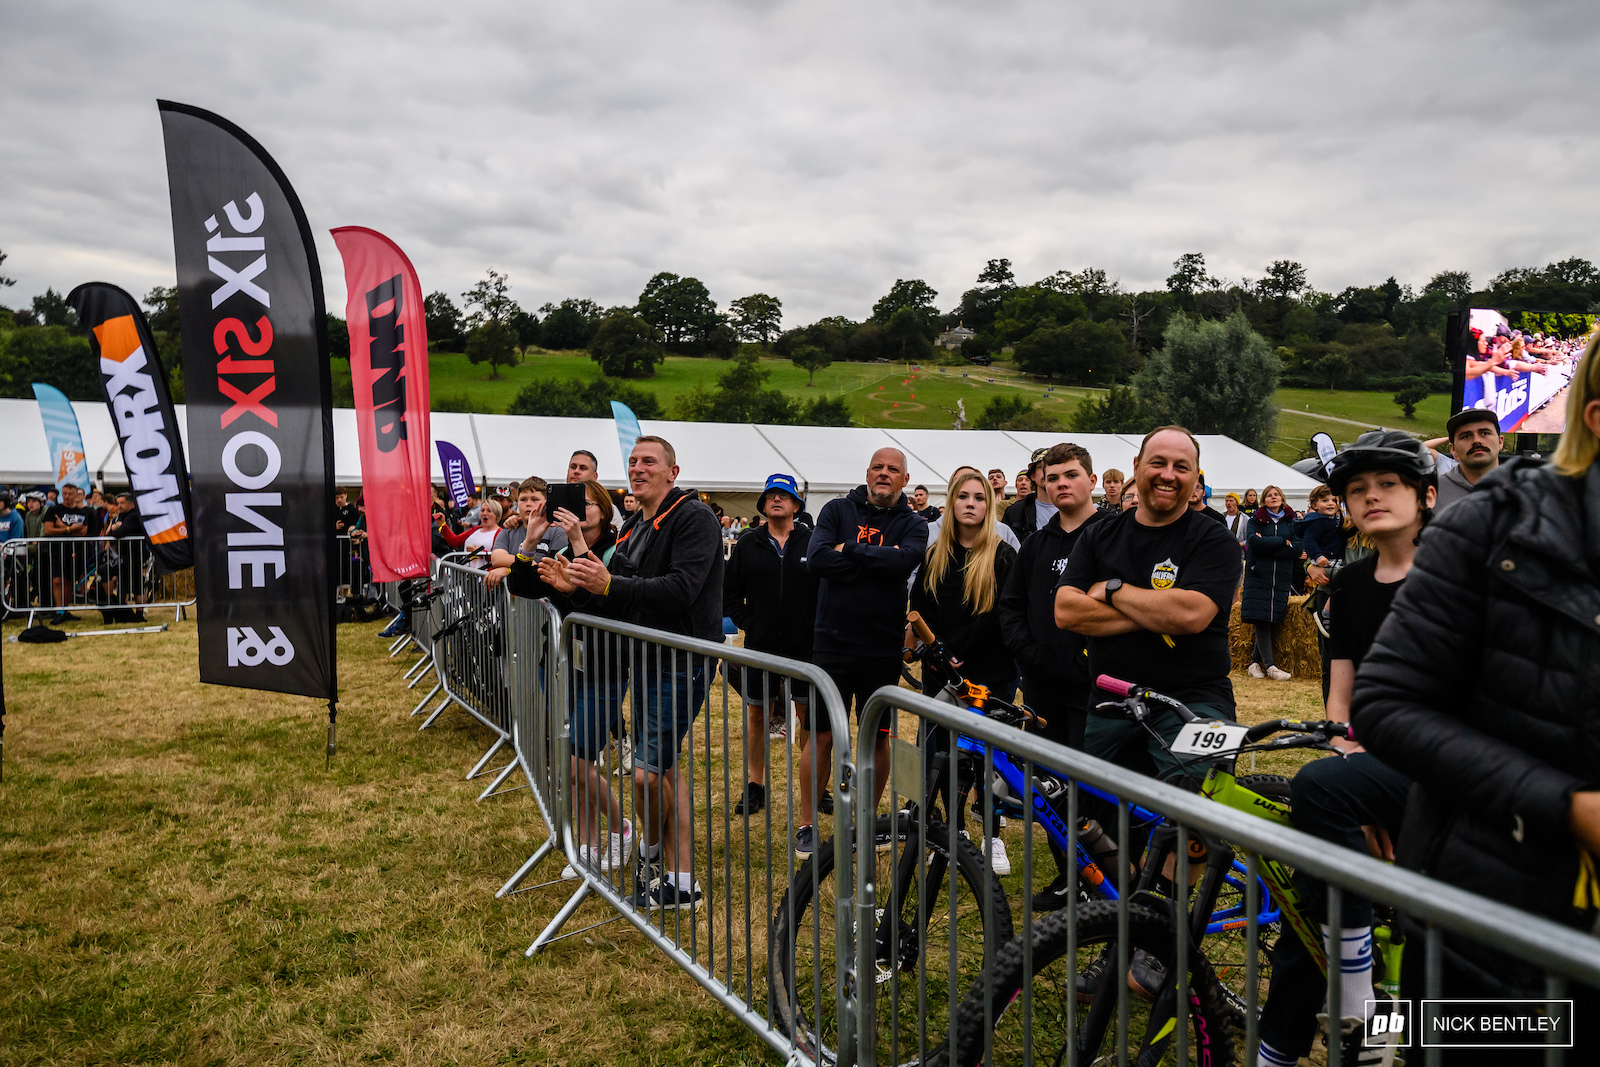 With the event timed to coincide with the end of all of the days racing the crowd started to build